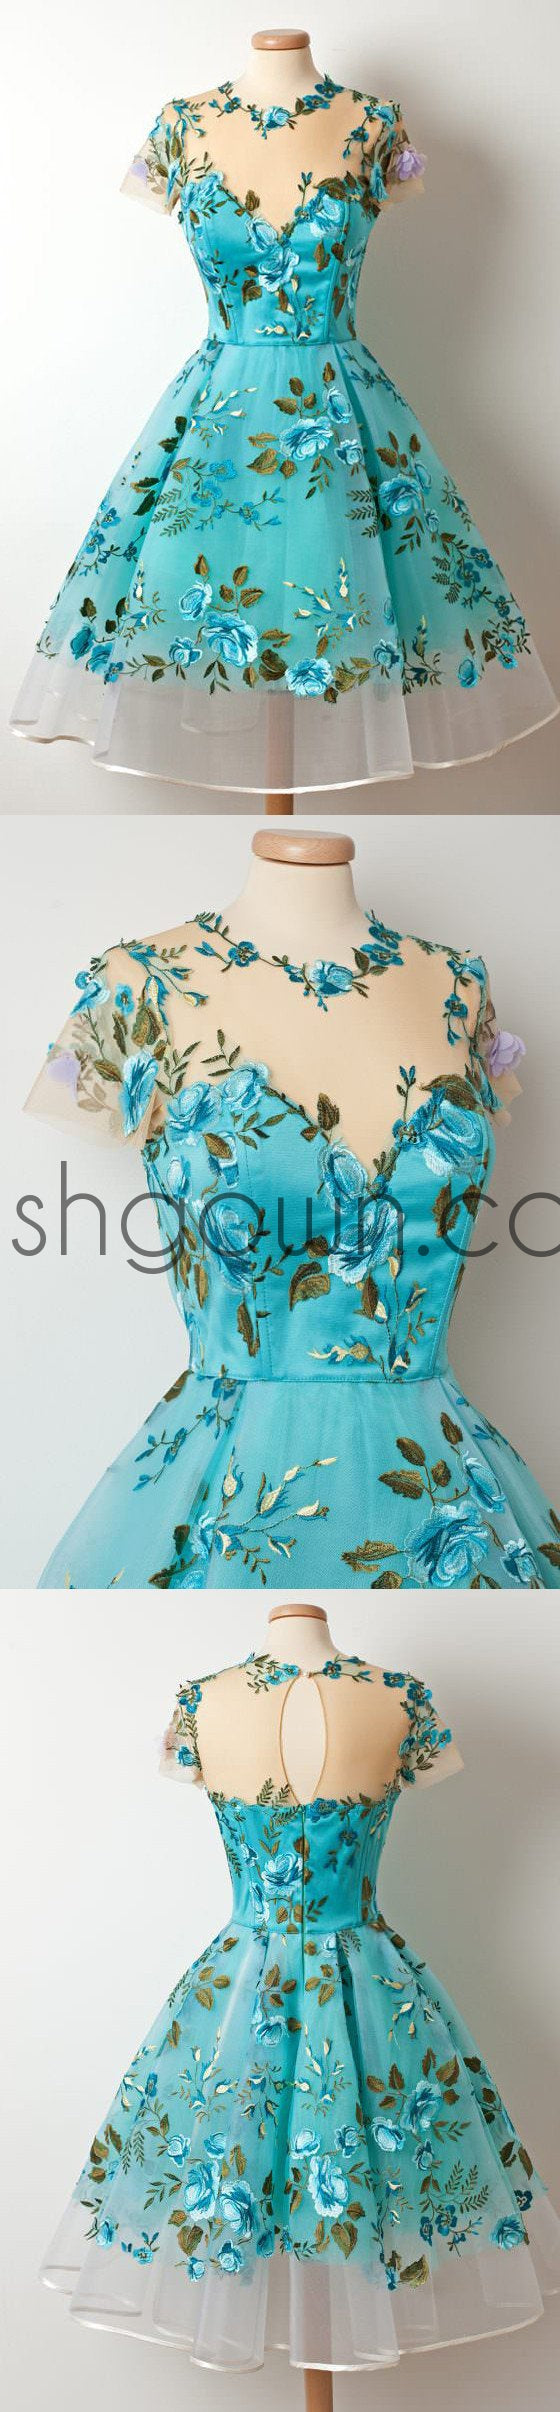 2017 Short Sleeves Unique Applique Blue Short Homecoming Dresses, WG804